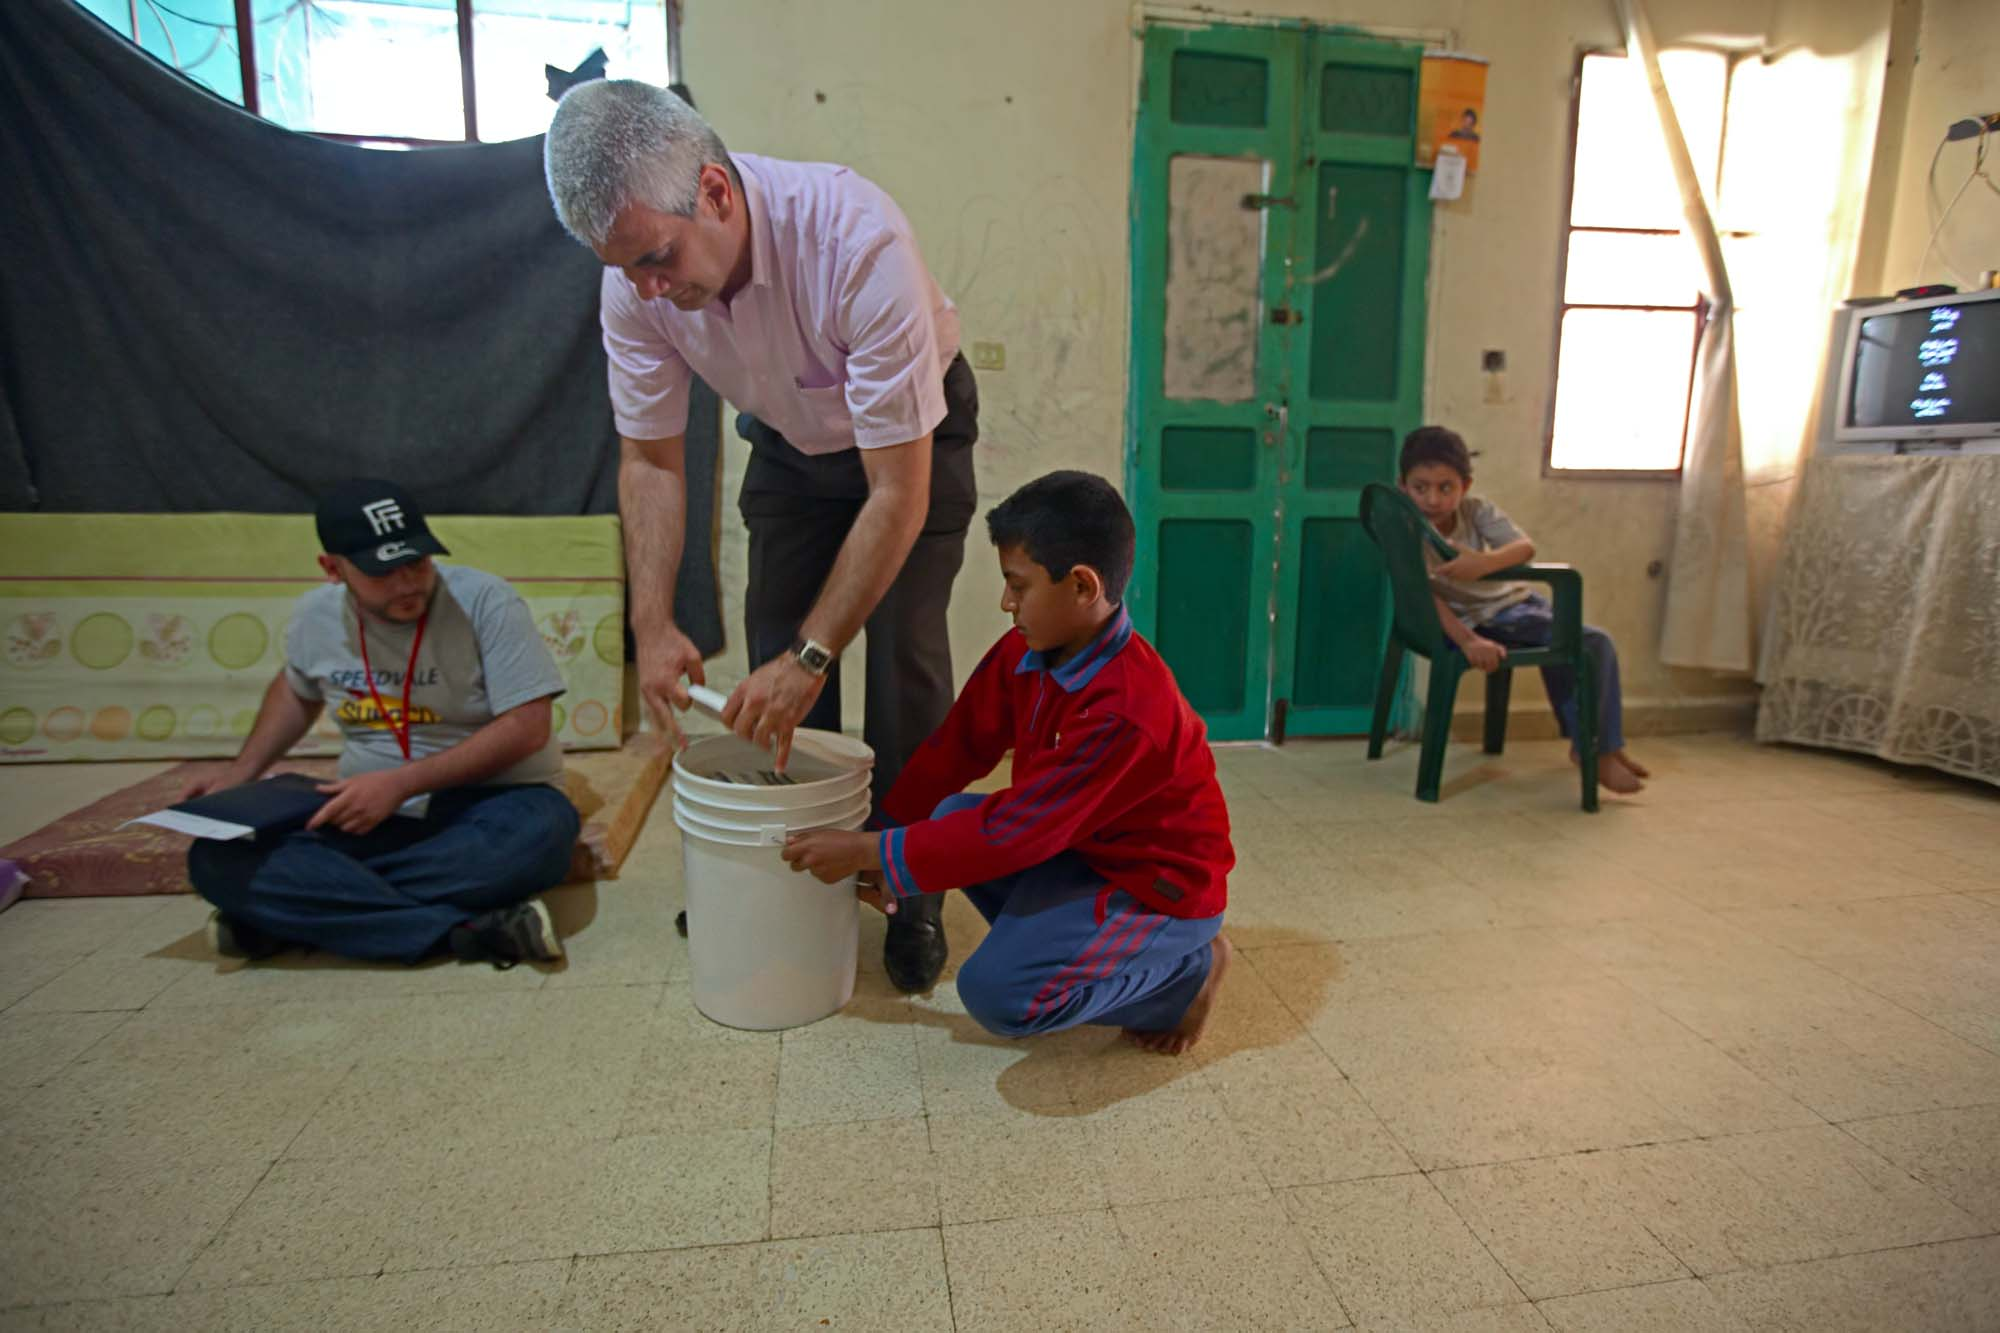 A man opens the lid of a white plastic bucket with assistance from a boy. A man and another boy watch.